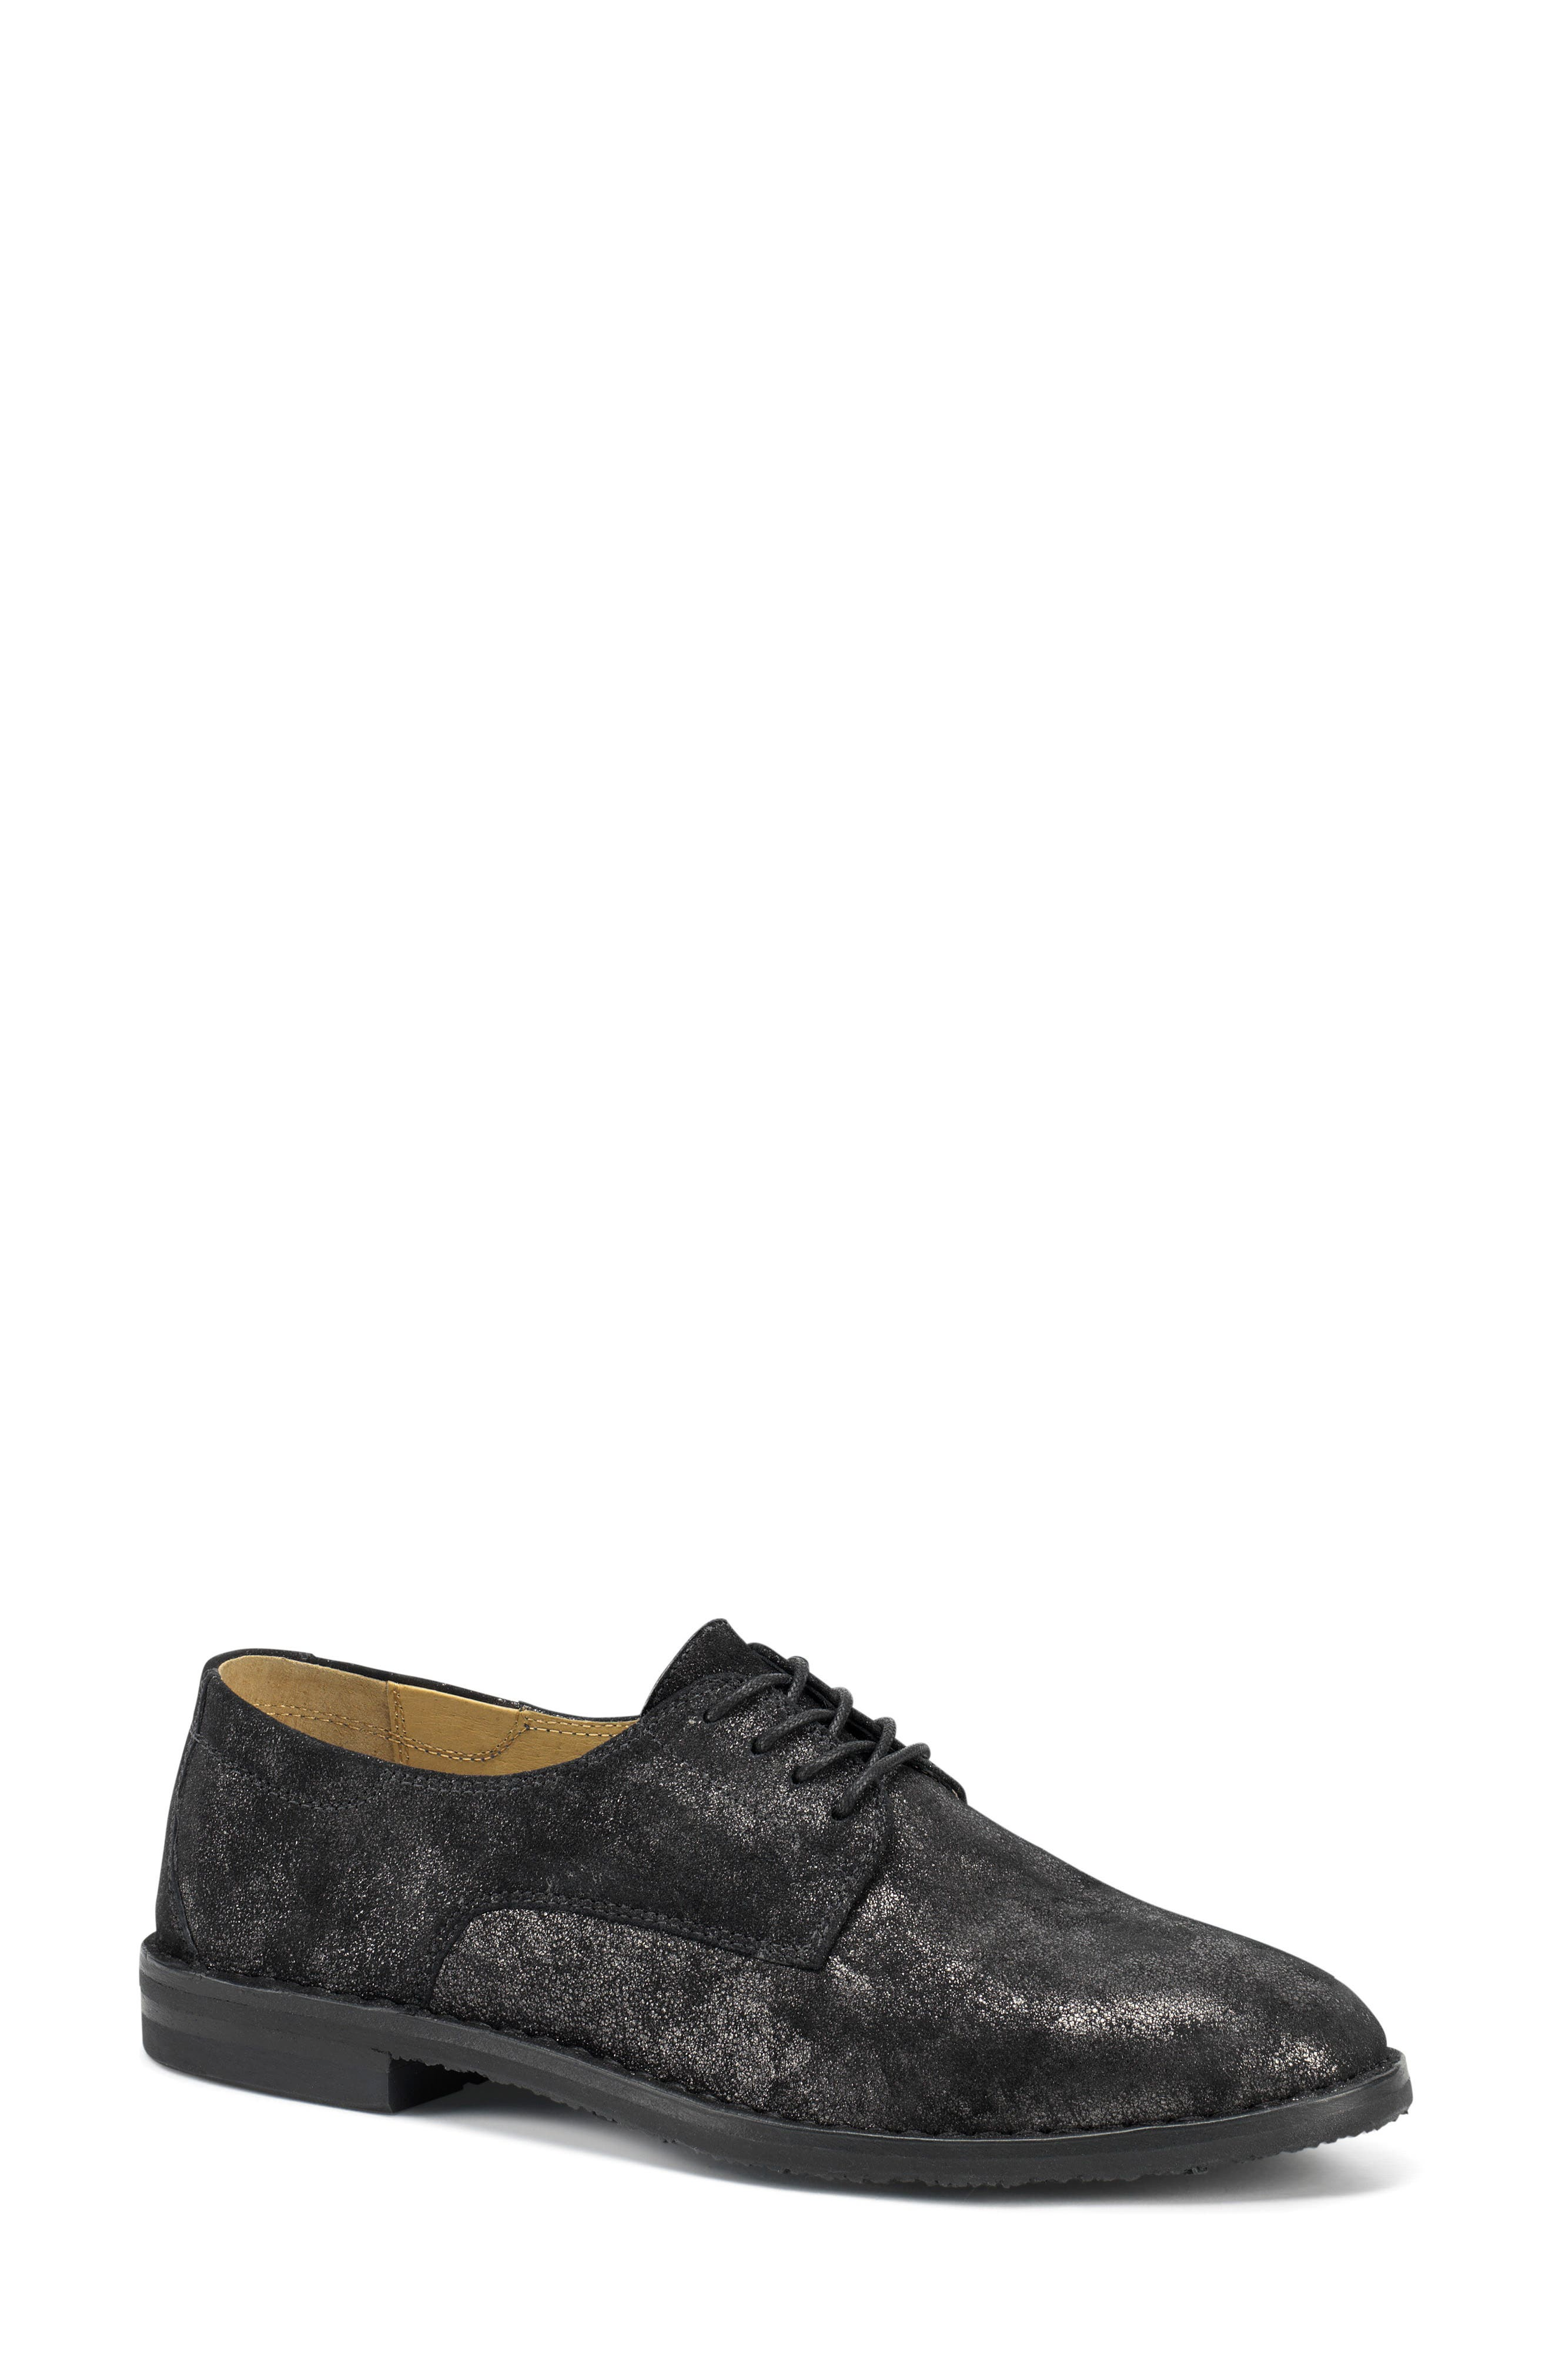 'Ana' Metallic Leather Oxford,                         Main,                         color, BLACK SUEDE